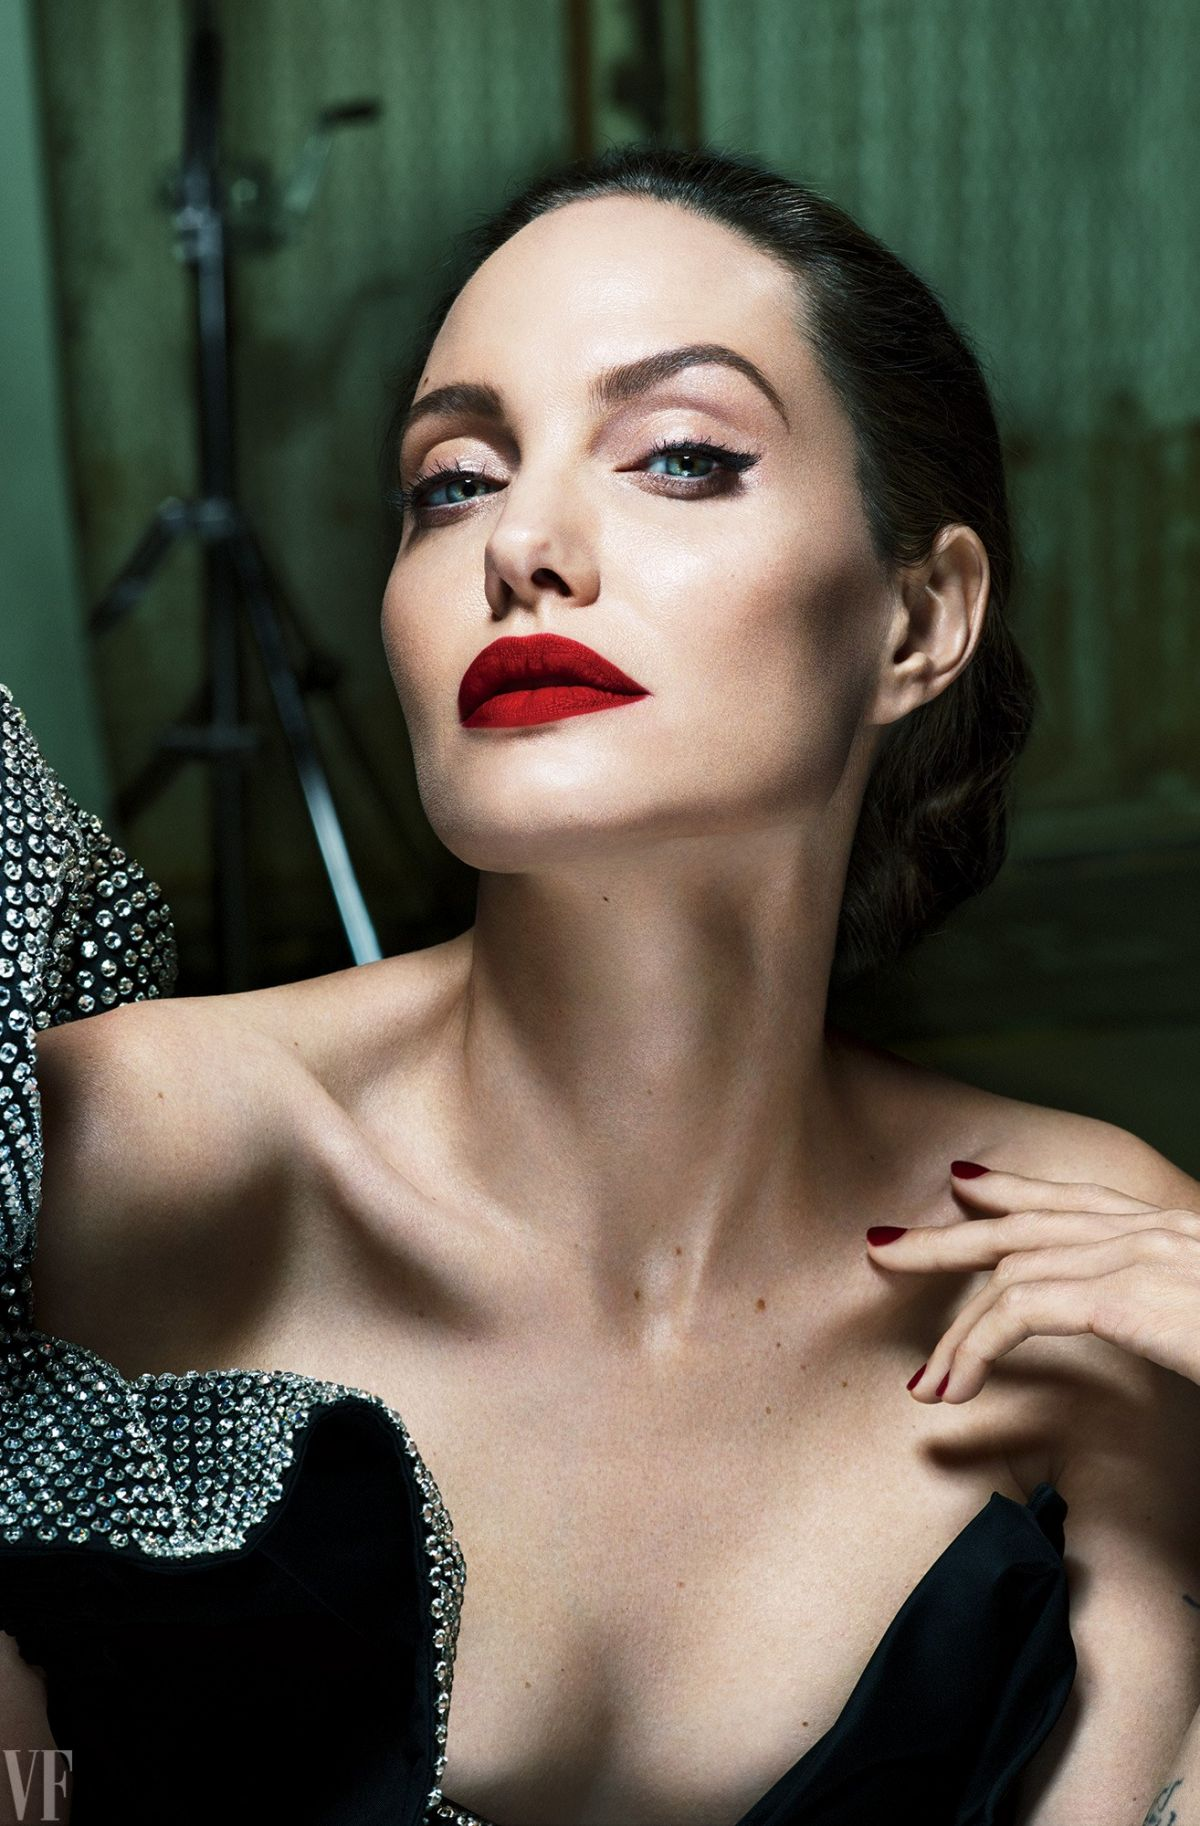 ANGELINA JOLIE for Van... Angelina Jolie